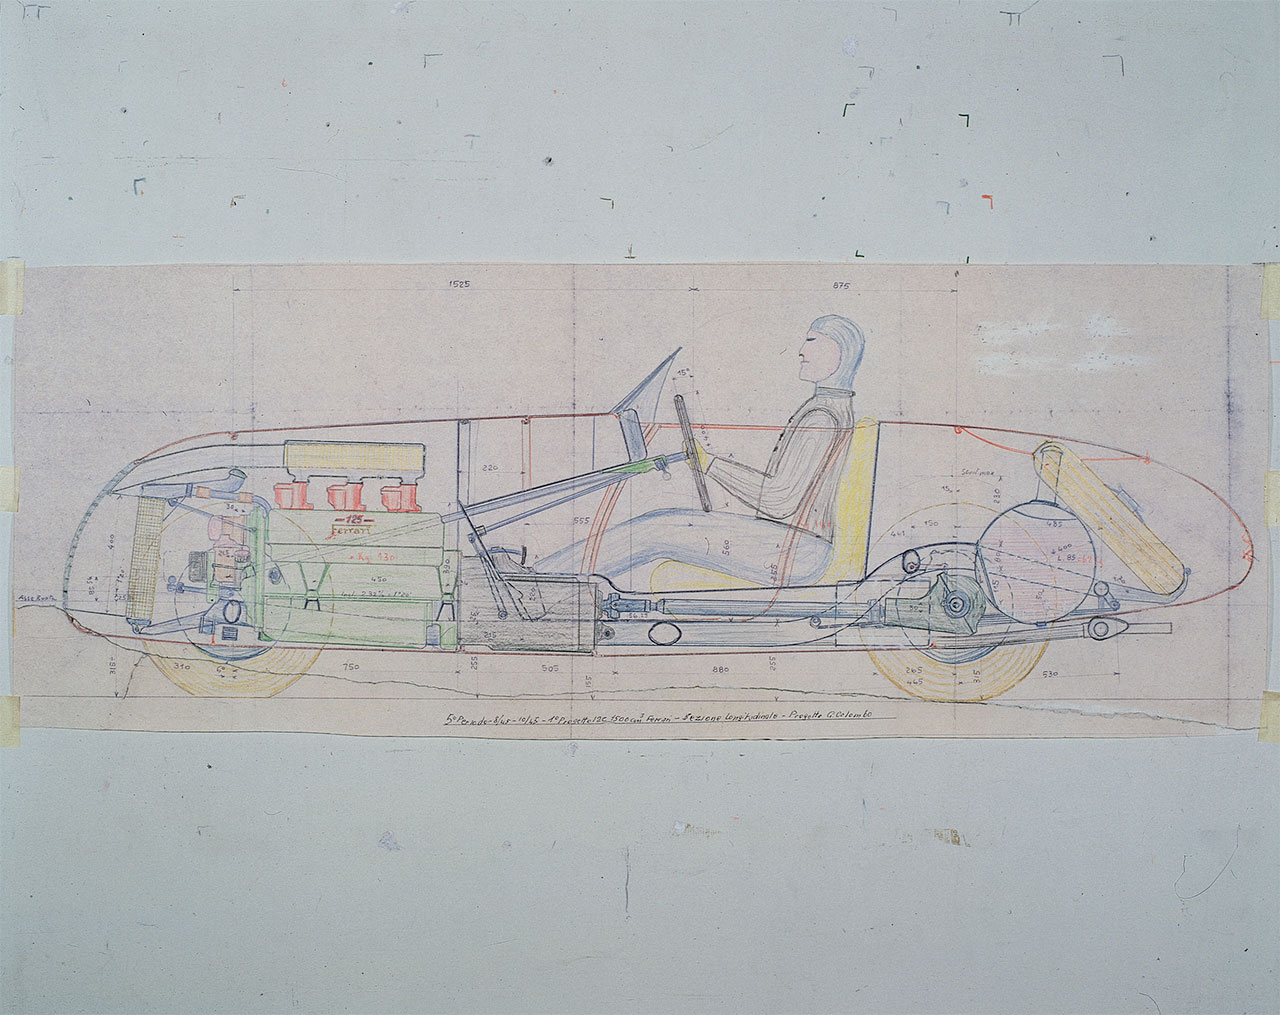 Side view with the mechanics in the transparency of the first Ferrari car, 125 S. - Gioachino Colombo's project executed in August 1945. Photo courtesy of Ferrari.